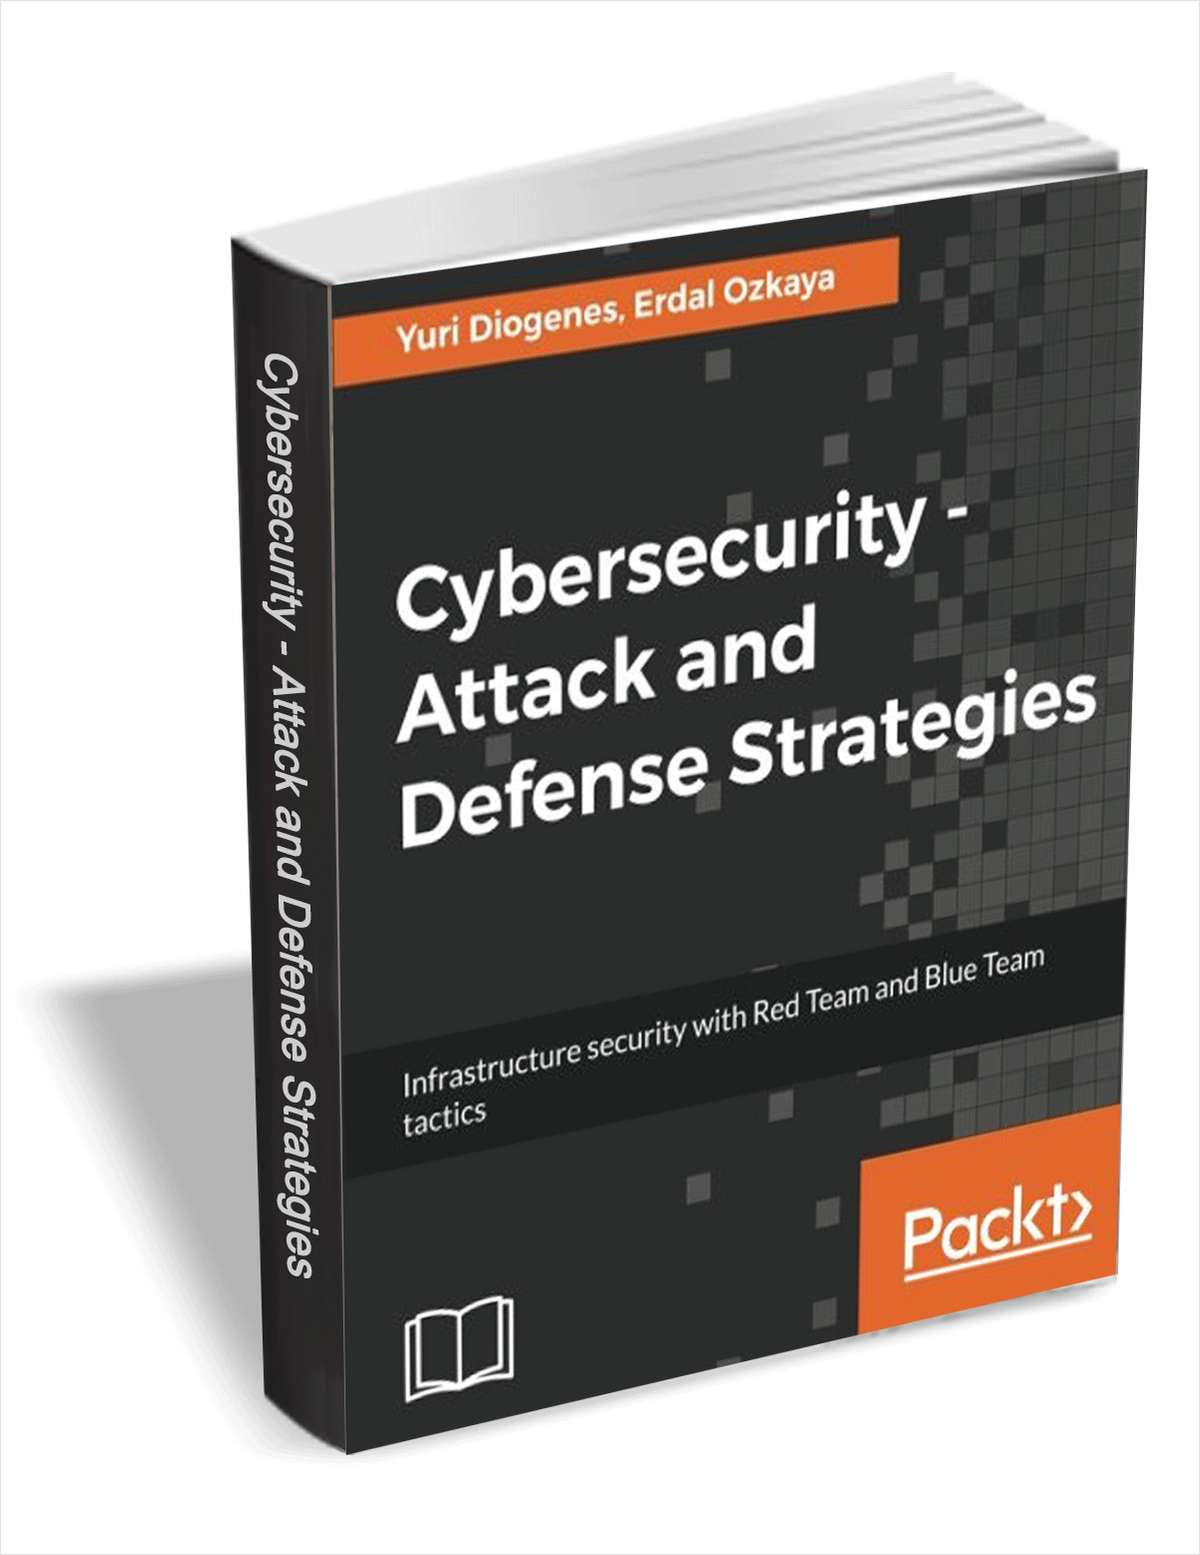 Cybersecurity Attack Defense Strategies